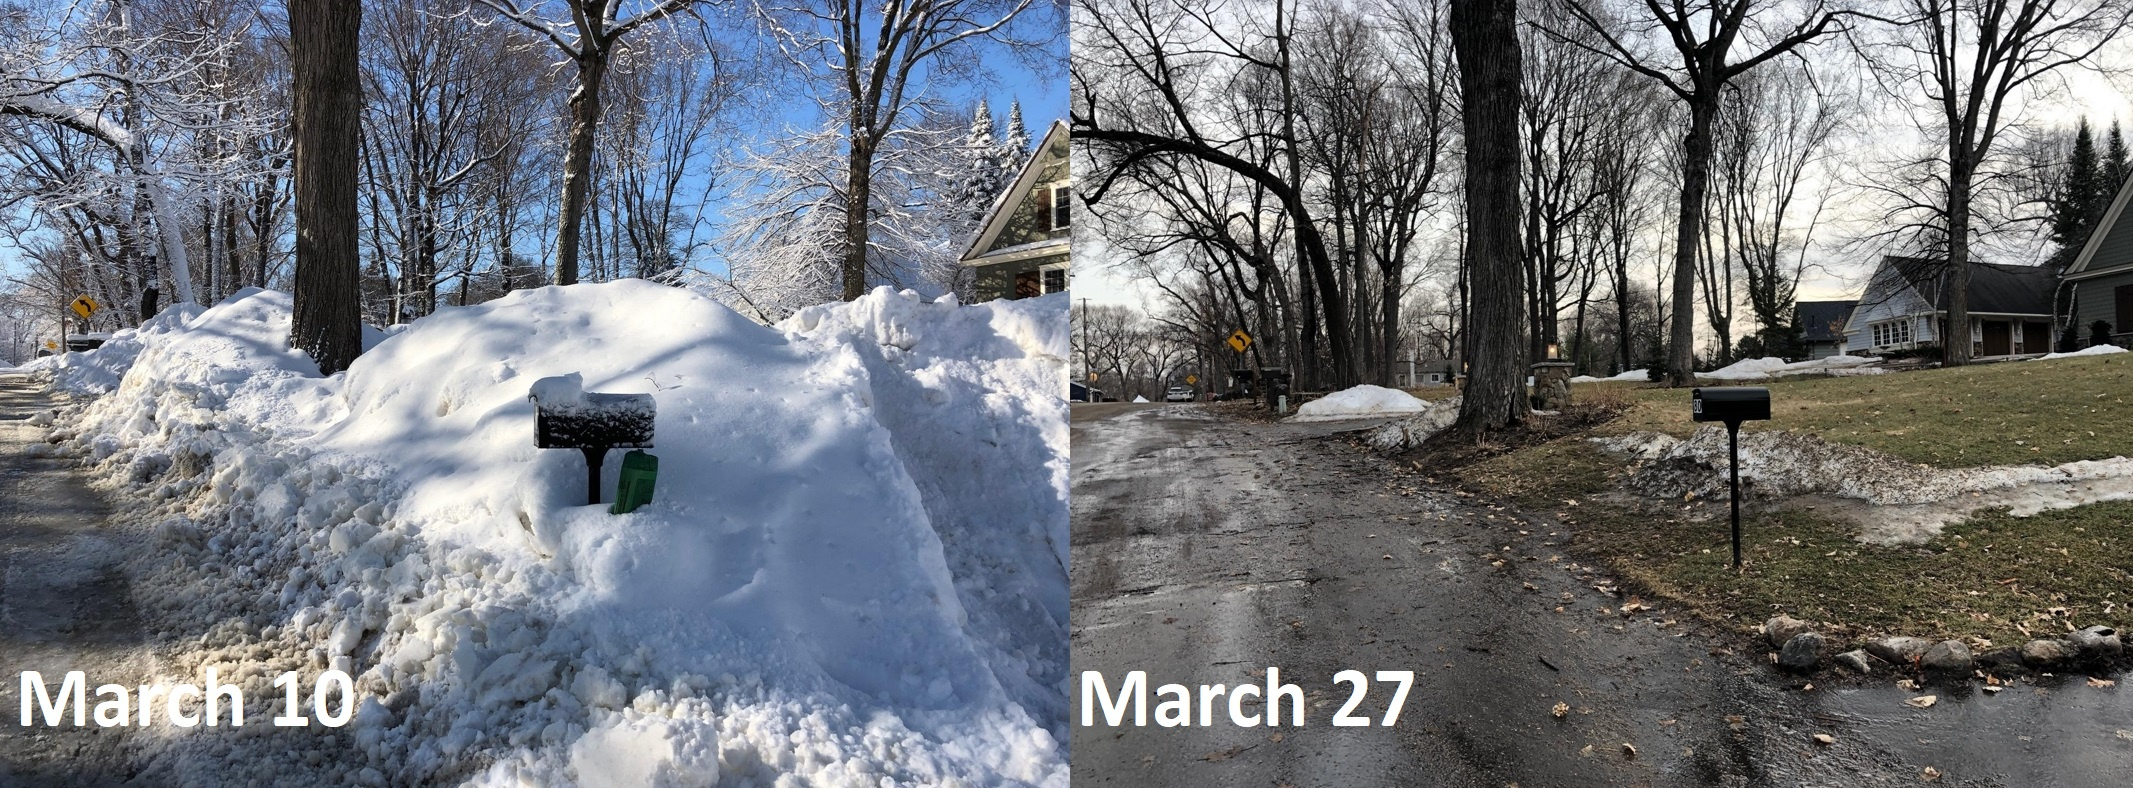 Madison Dodges Weather Bullet As >> Recipe For Safe Snow Melt Will Minnesota Dodge A Muddy Bullet